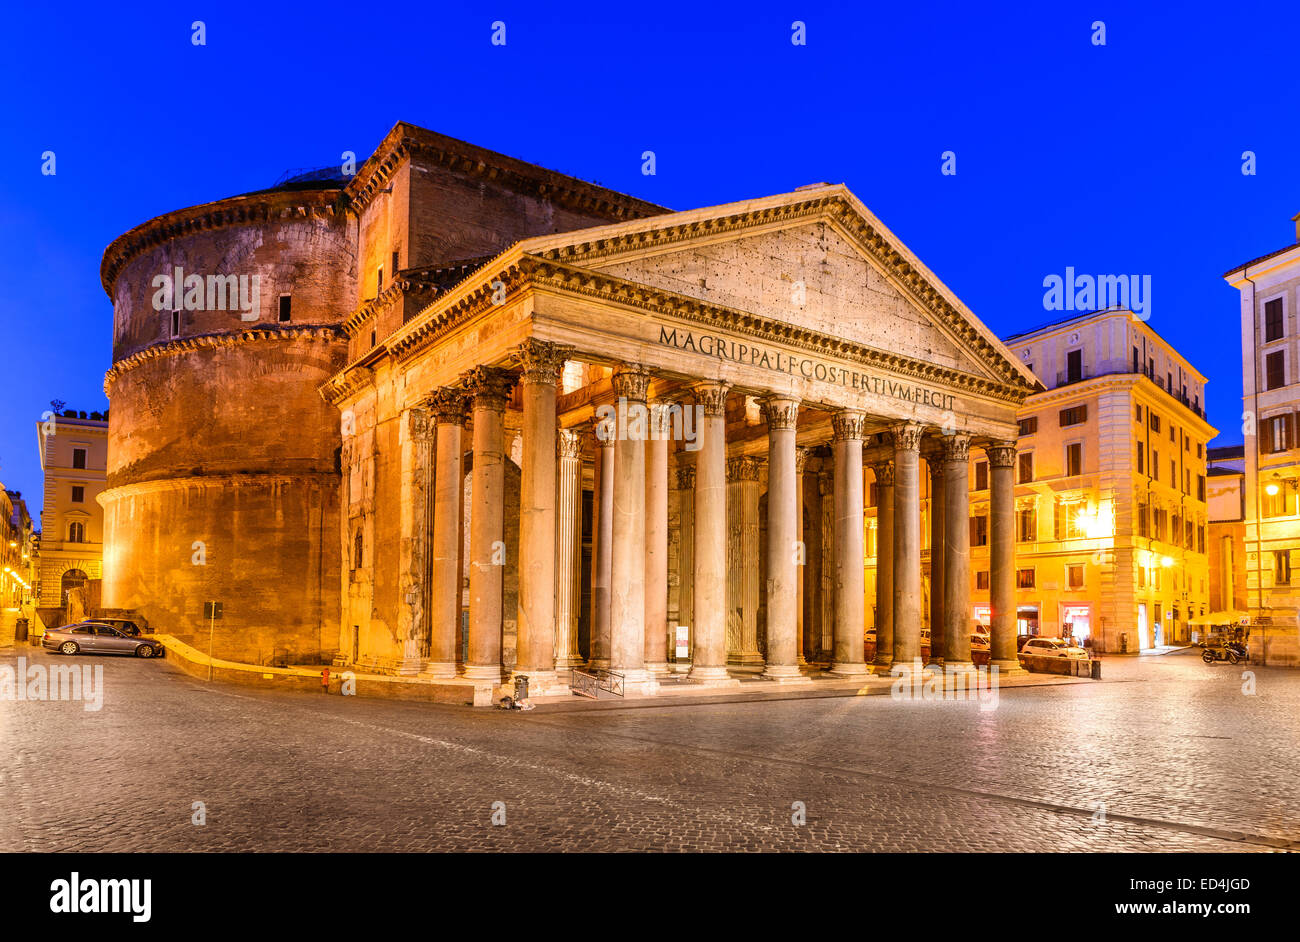 dating sites rome italy Here's some advice about where's good for souvenir shopping in rome, italy design dating back to the shops in rome shopping in rome, italy, for souvenirs :.